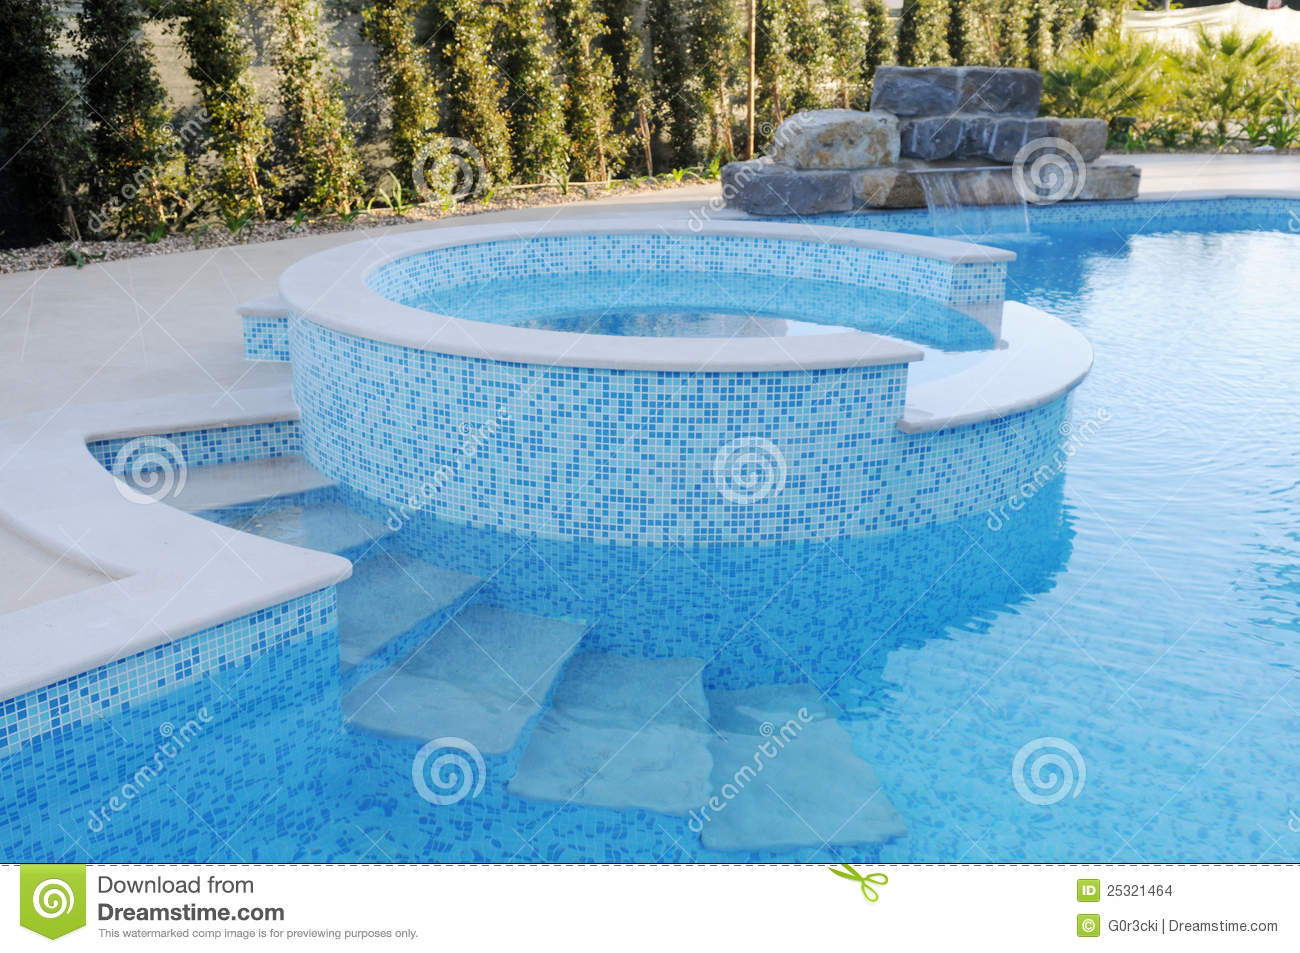 Jacuzzi Pool Top Caps Pool With Blue Tiles Artificial Waterfall Round Kids Pool Stock